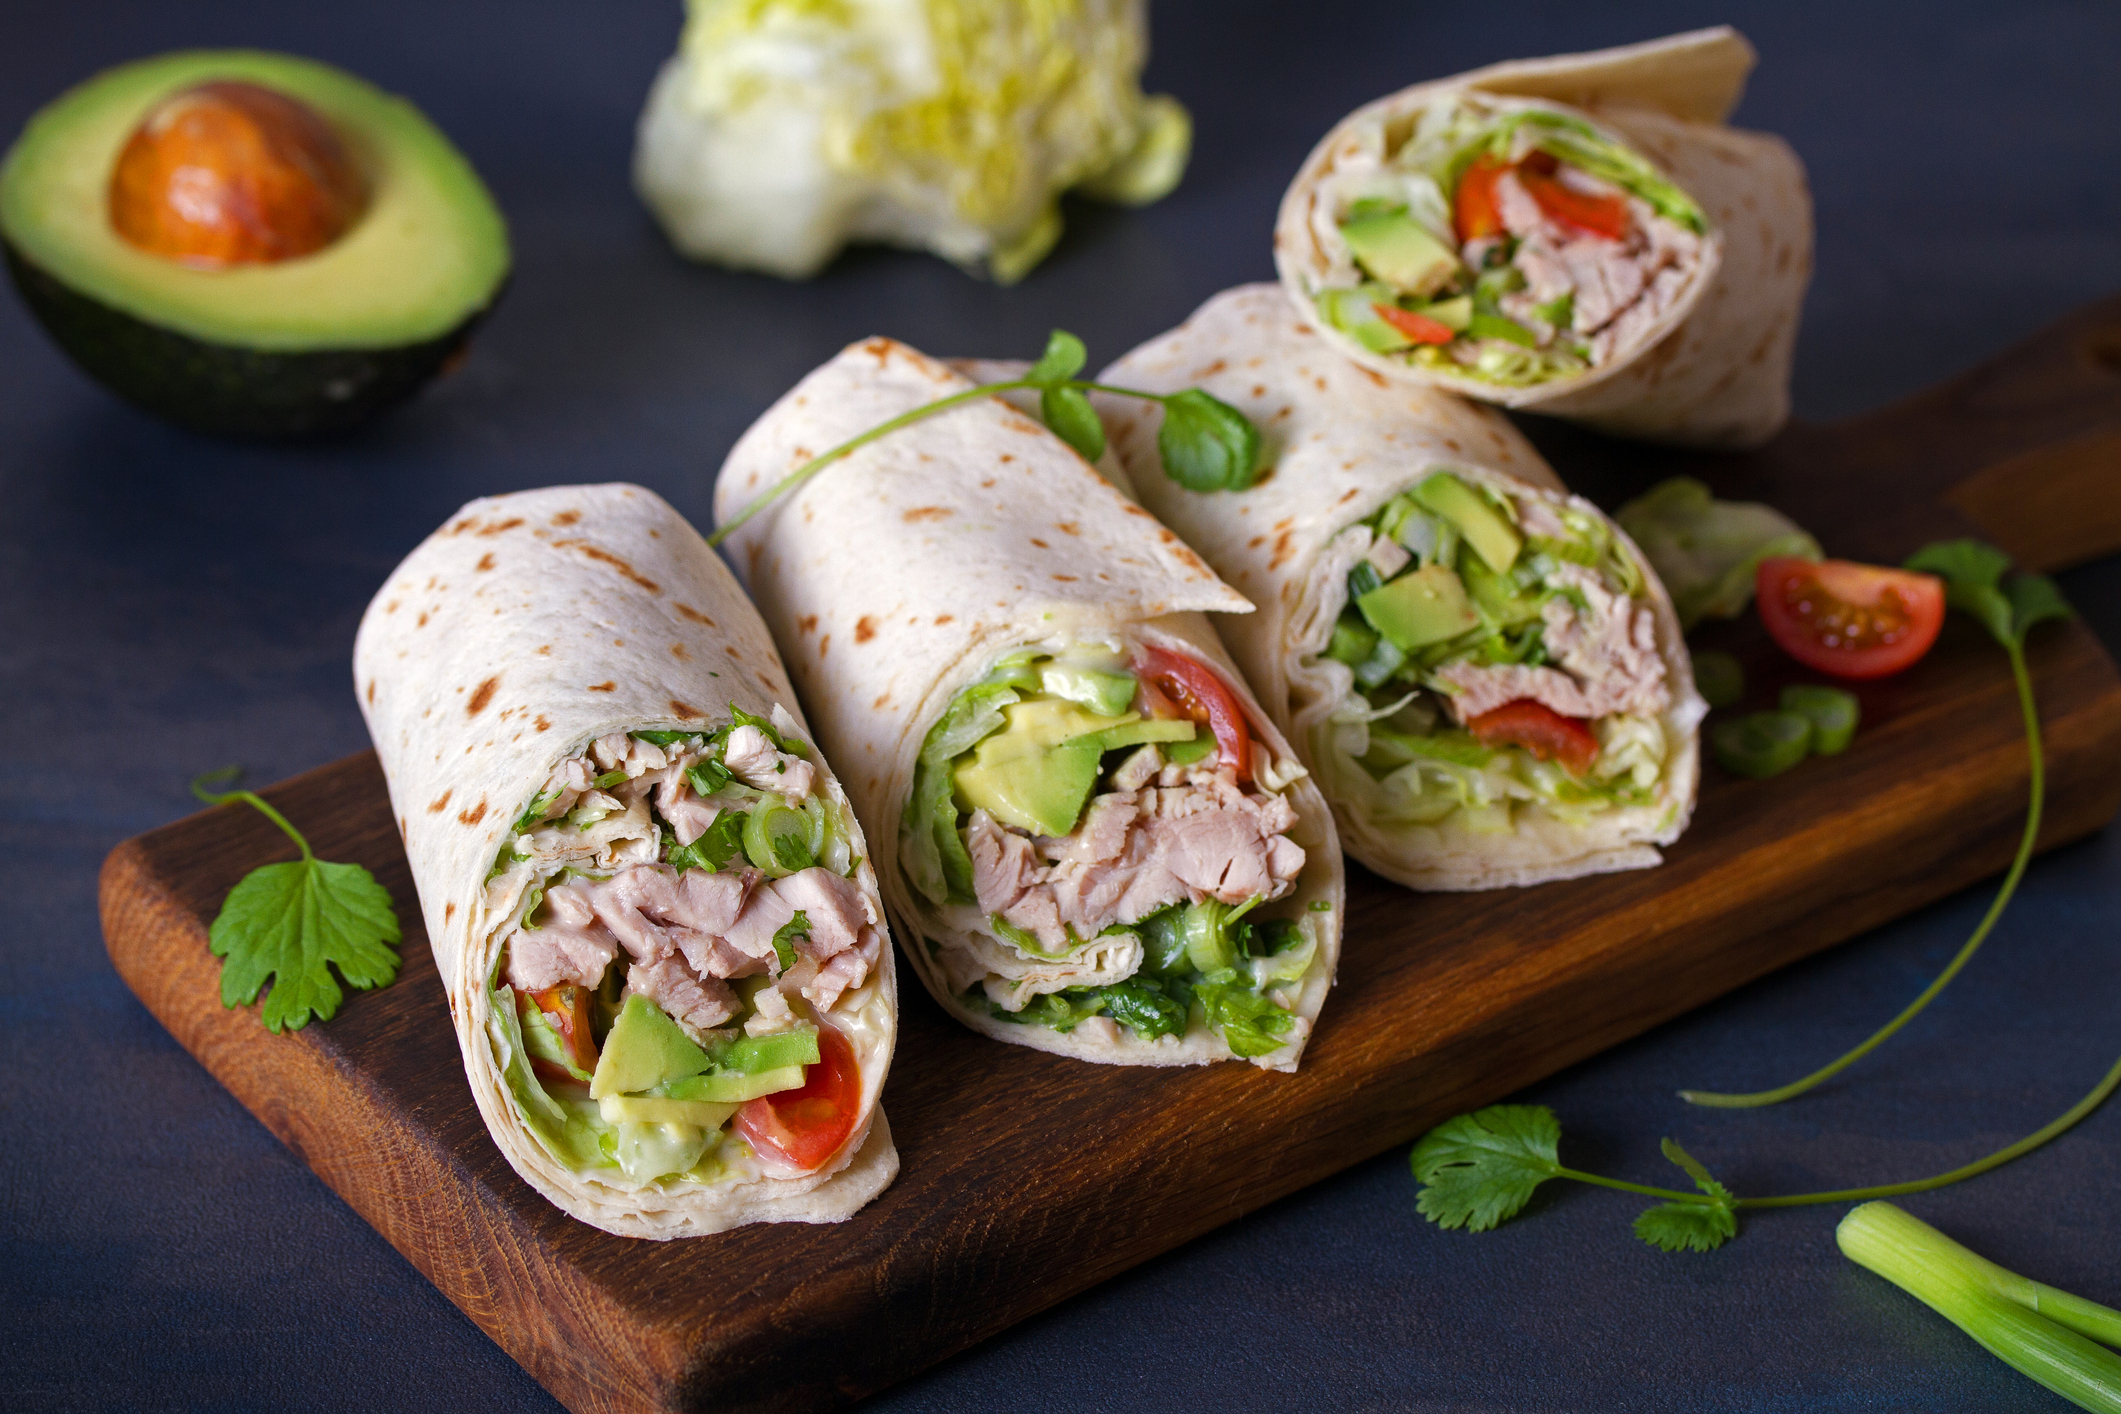 Turkey is wrapped in pear, tomatoes and lettuce when cut.  Tortilla, burritos, sandwiches, twists